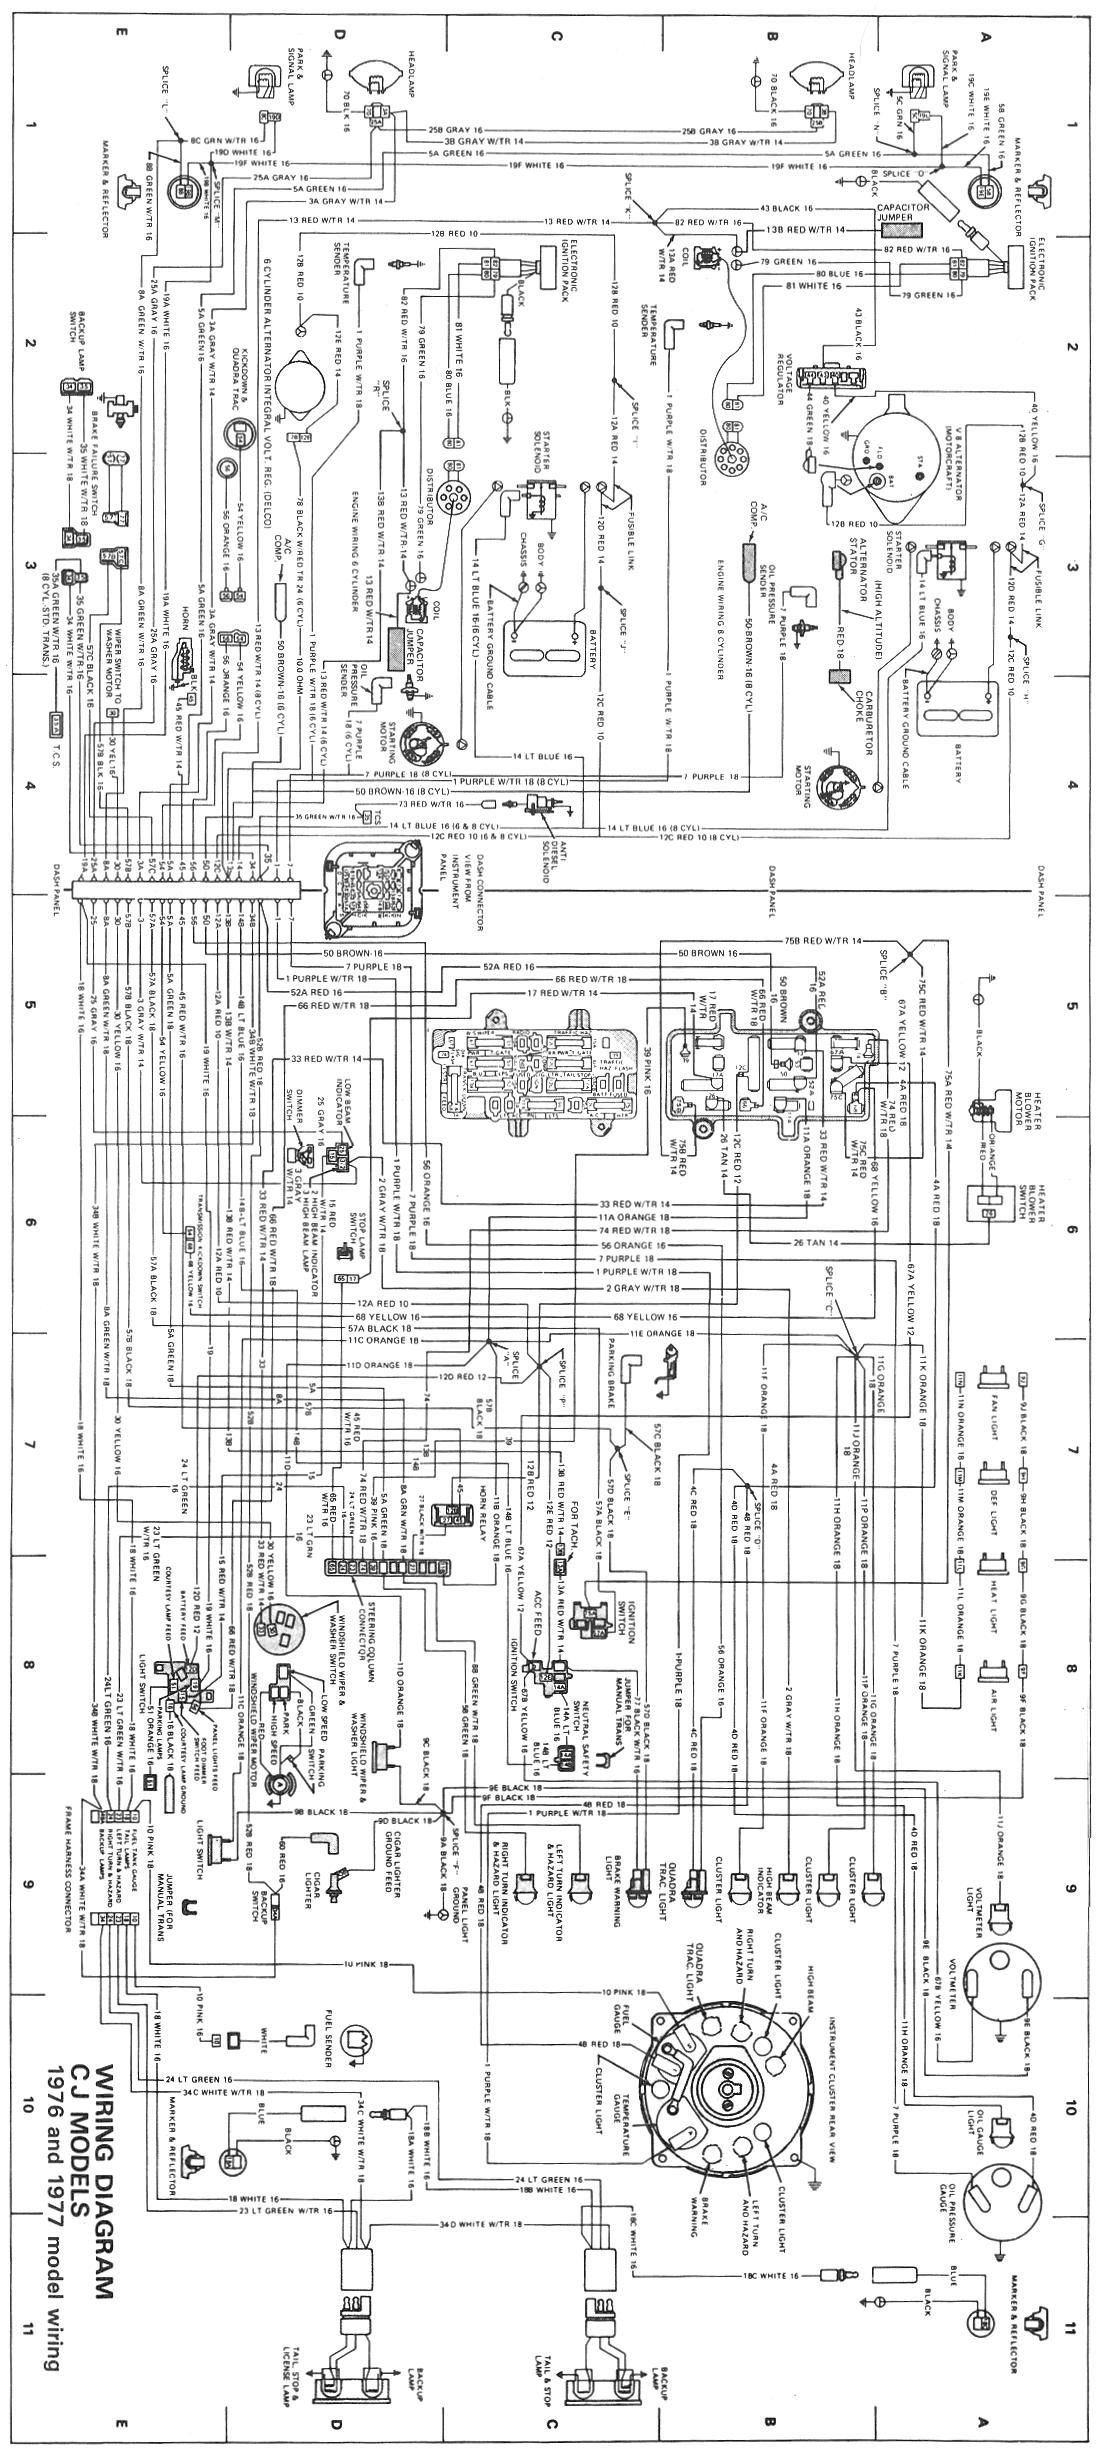 jeep cj7 horn wiring wiring schematics diagram rh mychampagnedaze com 2002 Jeep Grand Cherokee Interior 2004 Jeep Grand Cherokee